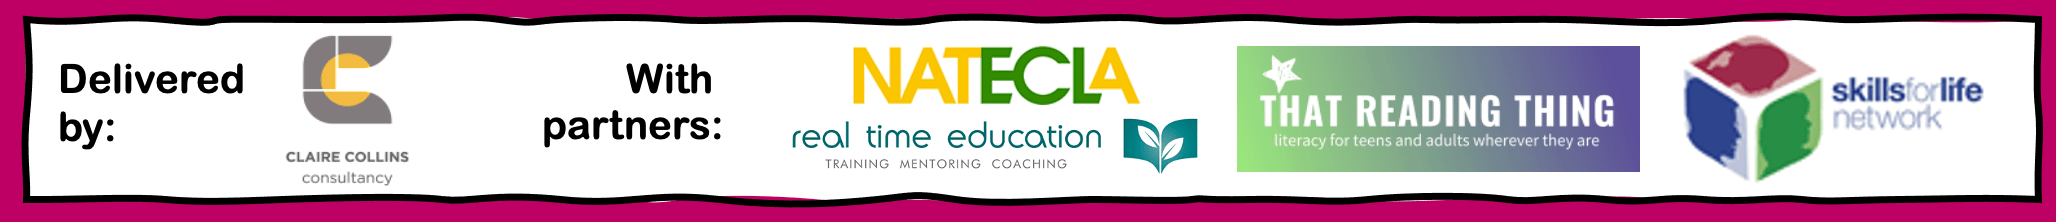 Delivered by CCC with partners: NATECLA, That Reading Thing, Real Time Education and SfLNetwork